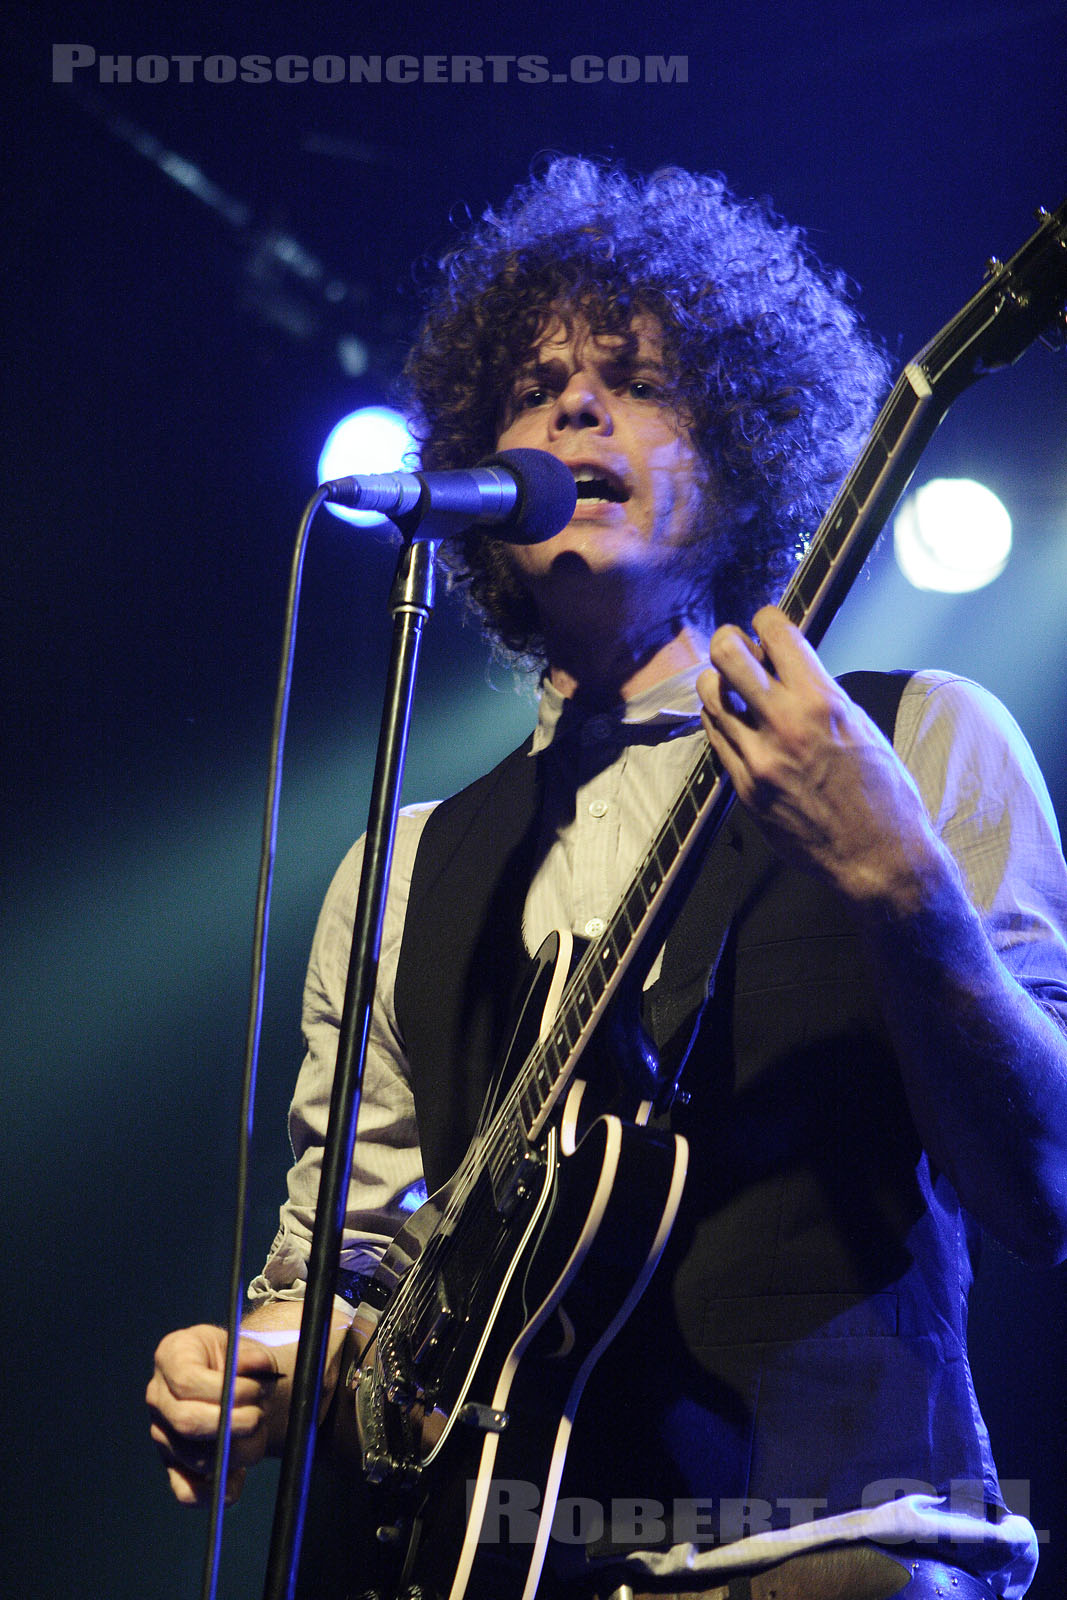 WOLFMOTHER - 2006-11-17 - PARIS - Elysee Montmartre